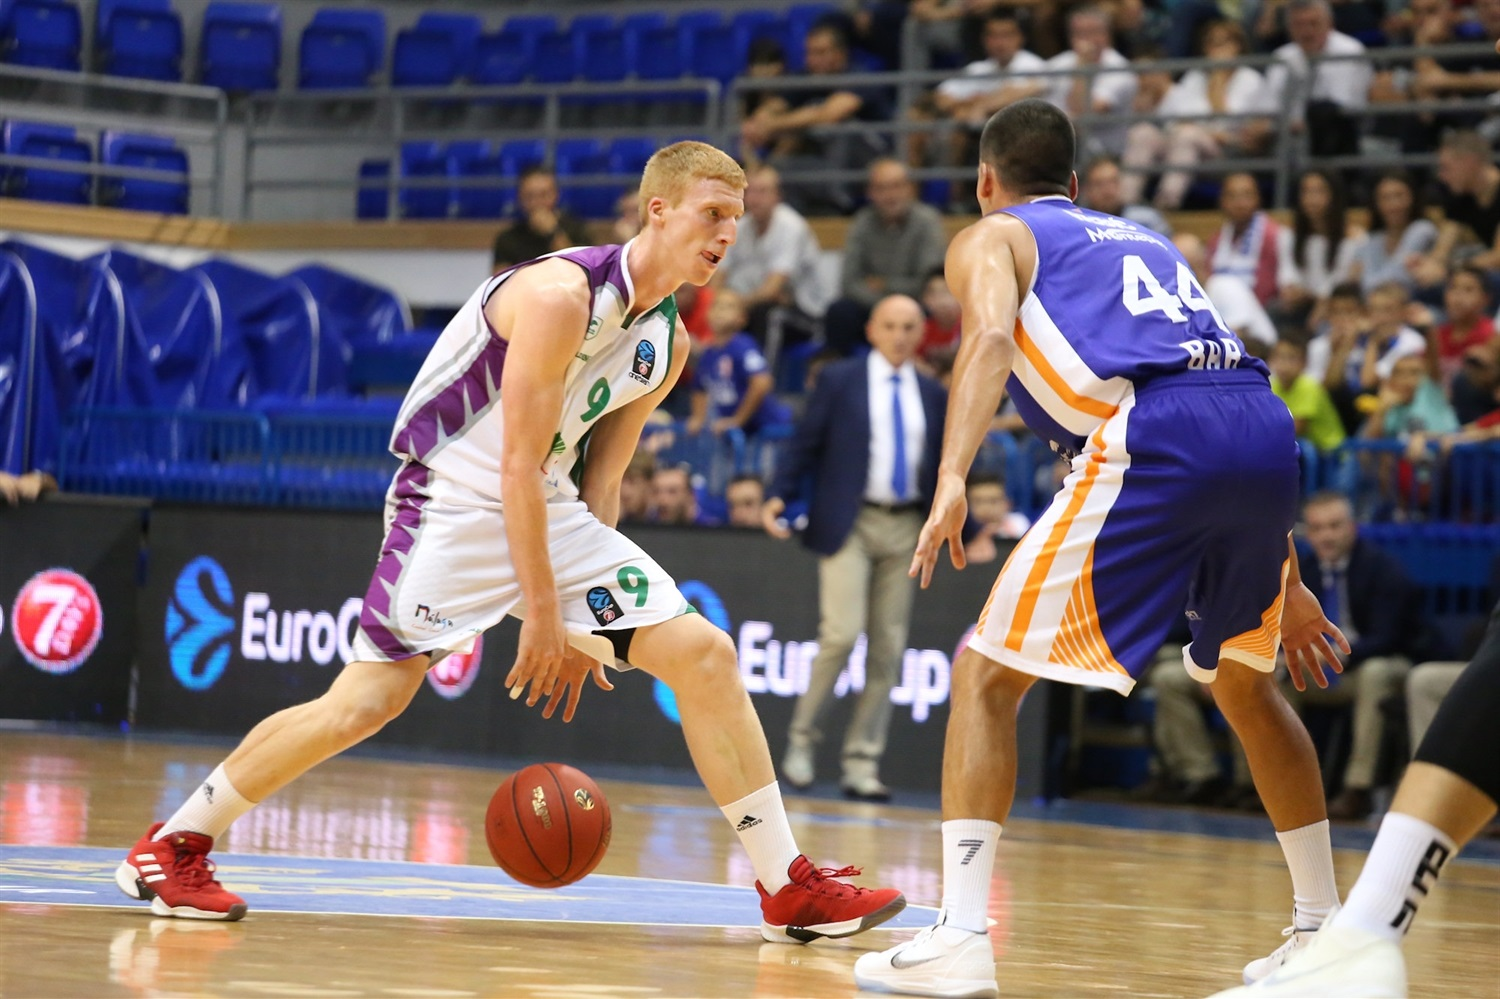 Alberto Diaz - Unicaja Malaga (photo Mornar) - EC18